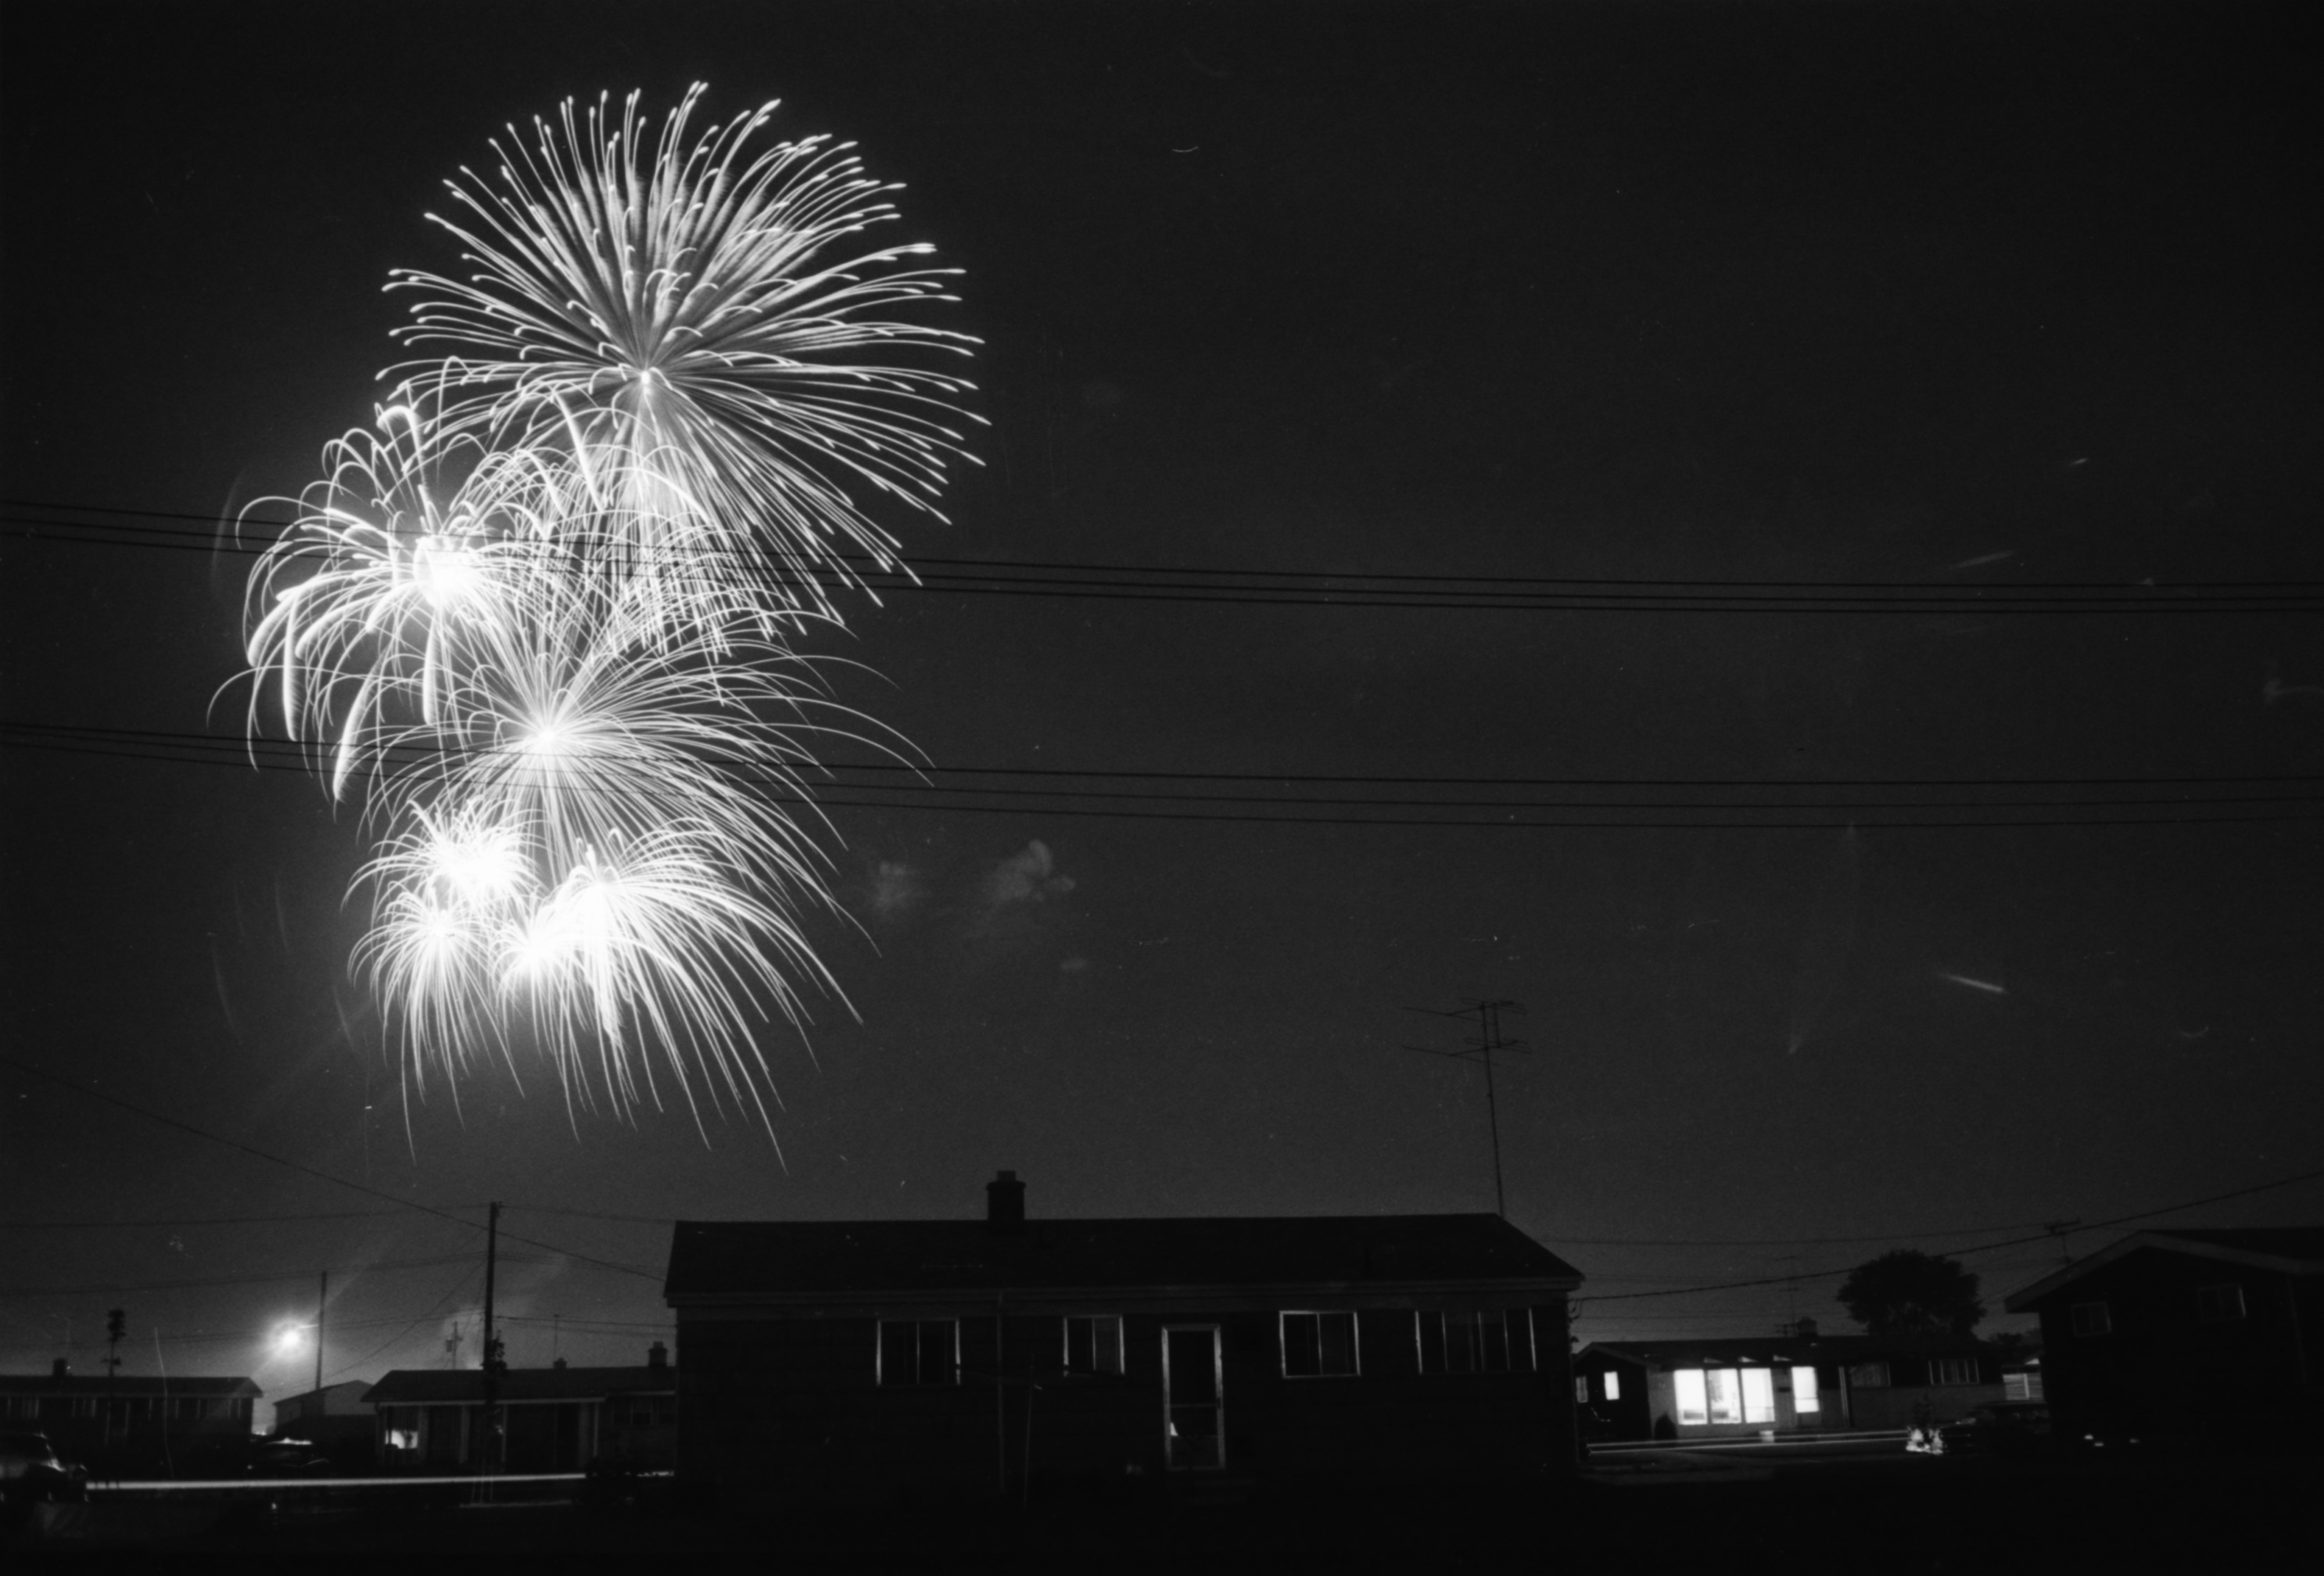 Fireworks Display At Buhr Park, July 1959 image